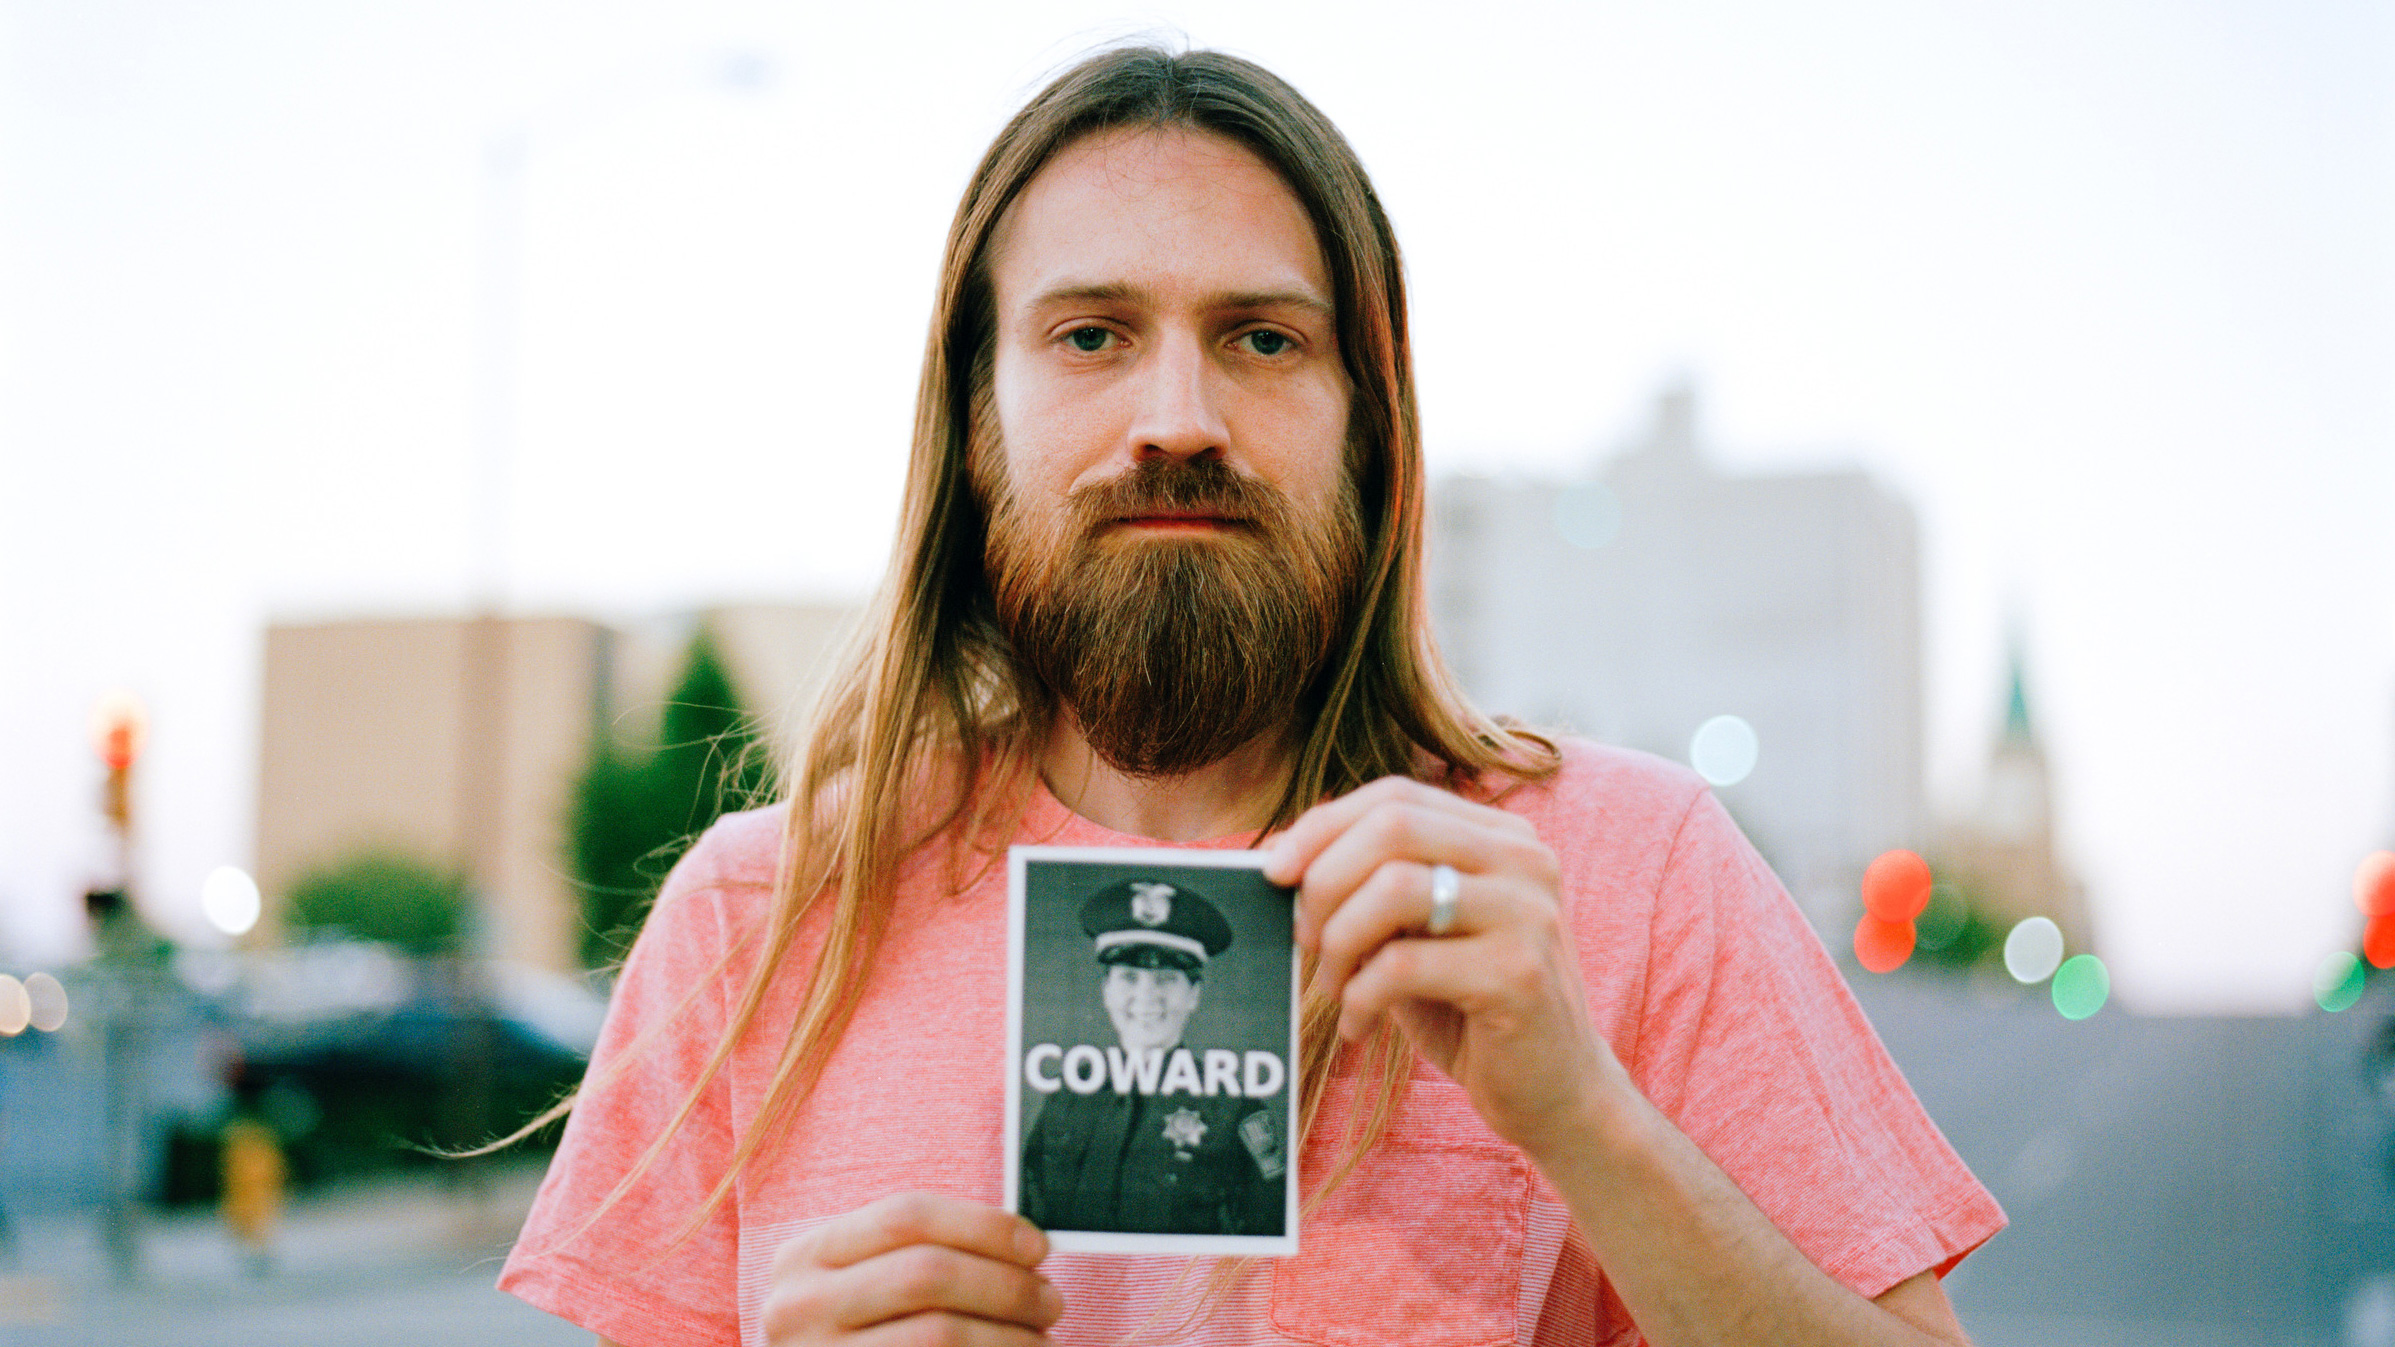 Zach Miller, 33, protests police in Tulsa, Oklahoma. (Photo by Edwin Torres/GroundTruth)